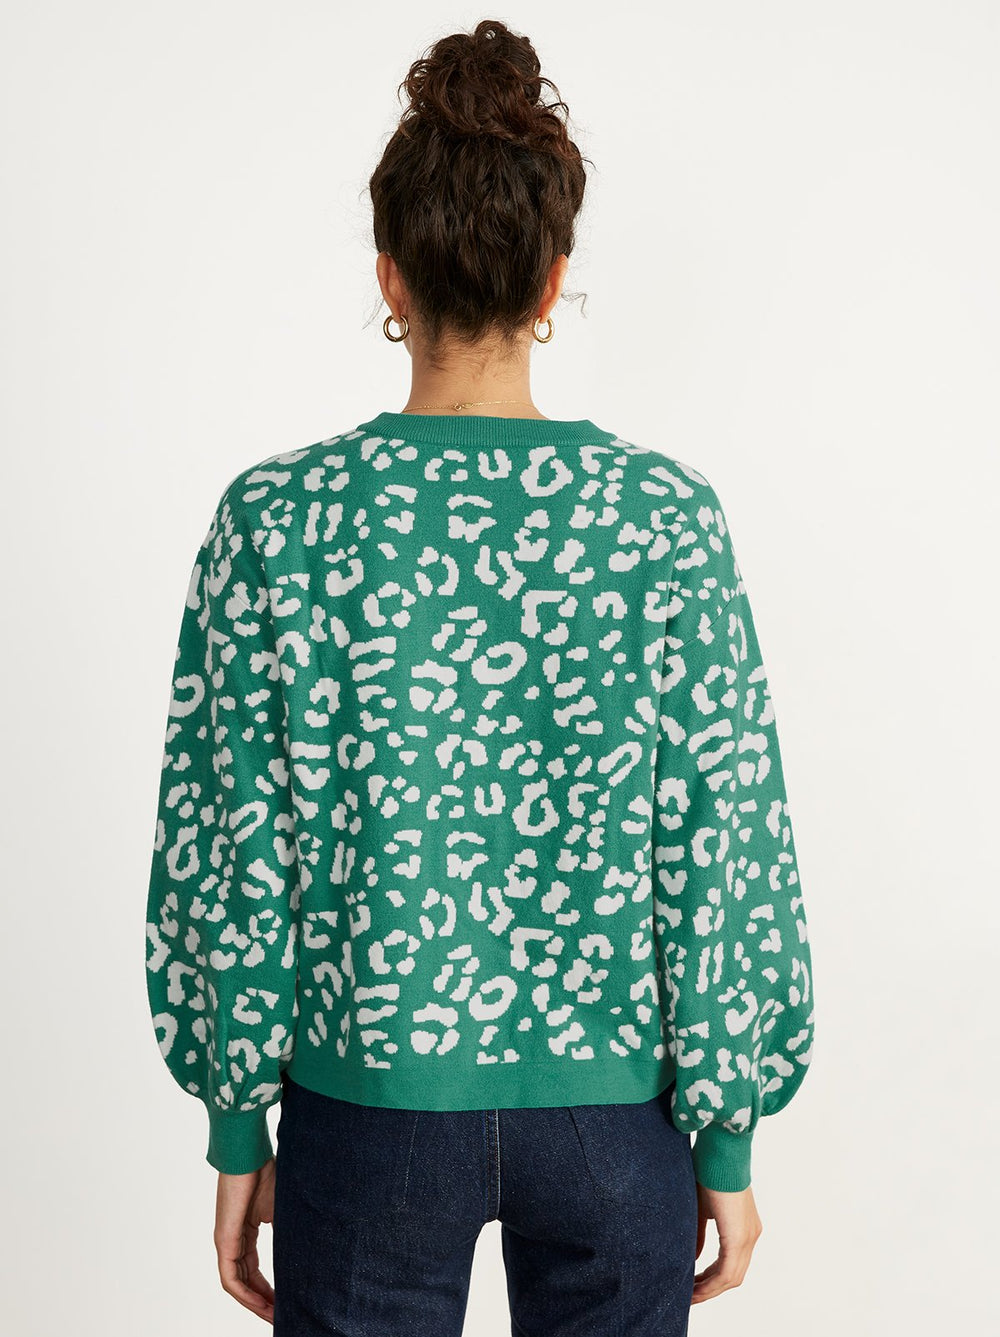 Chiara Green Animal Print Jumper by KITRI Studio